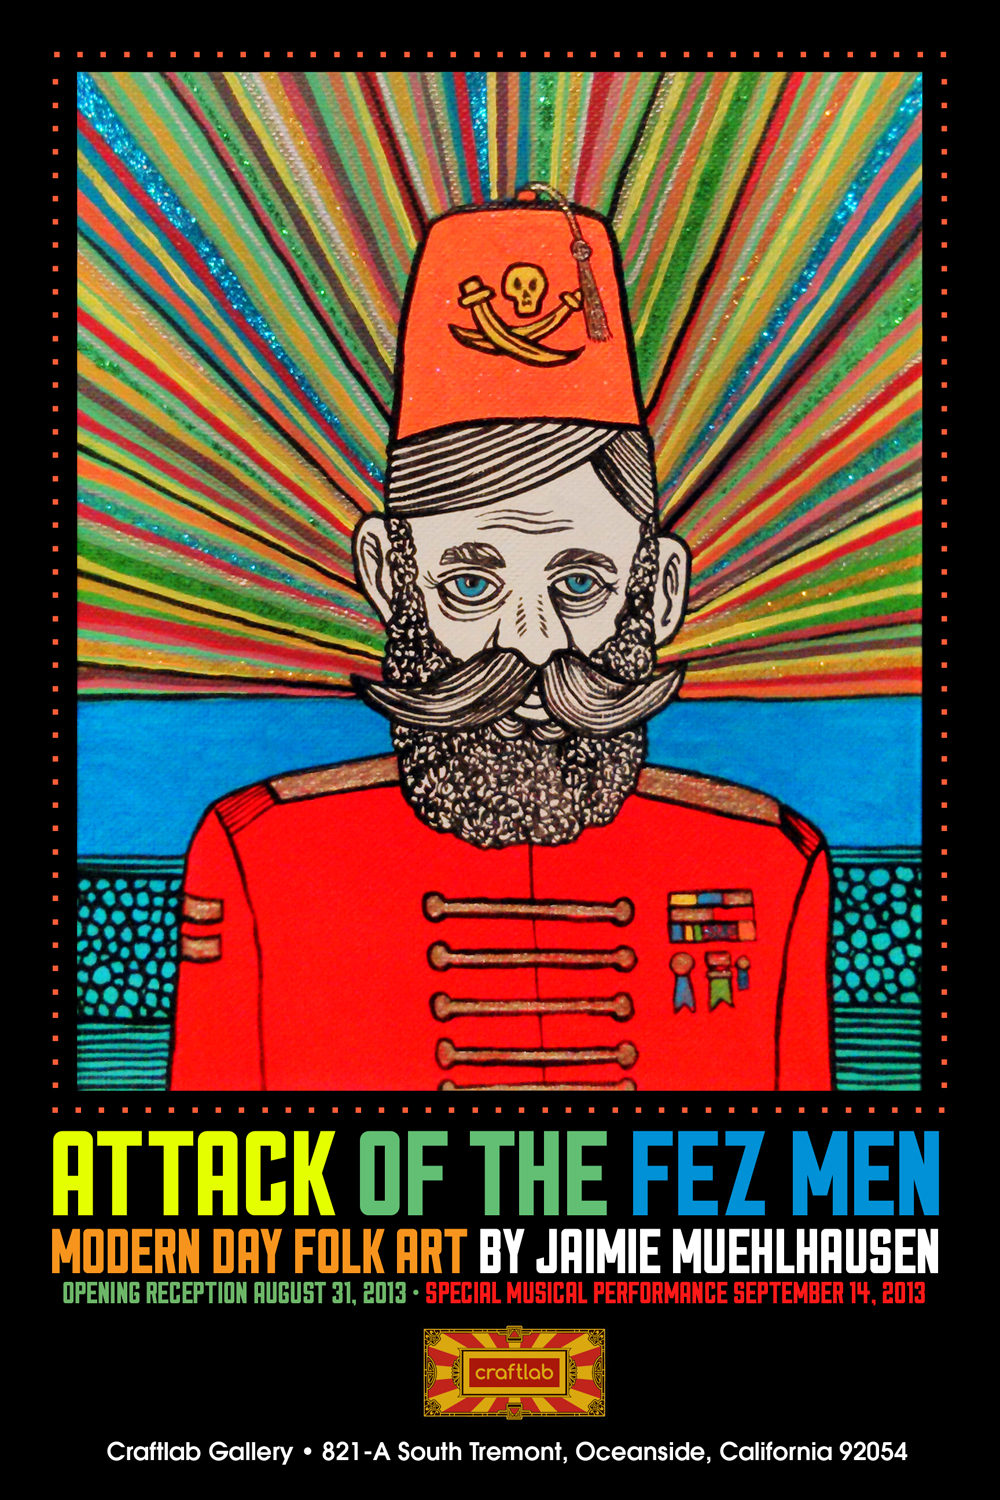 Attack of the Fez Men event poster